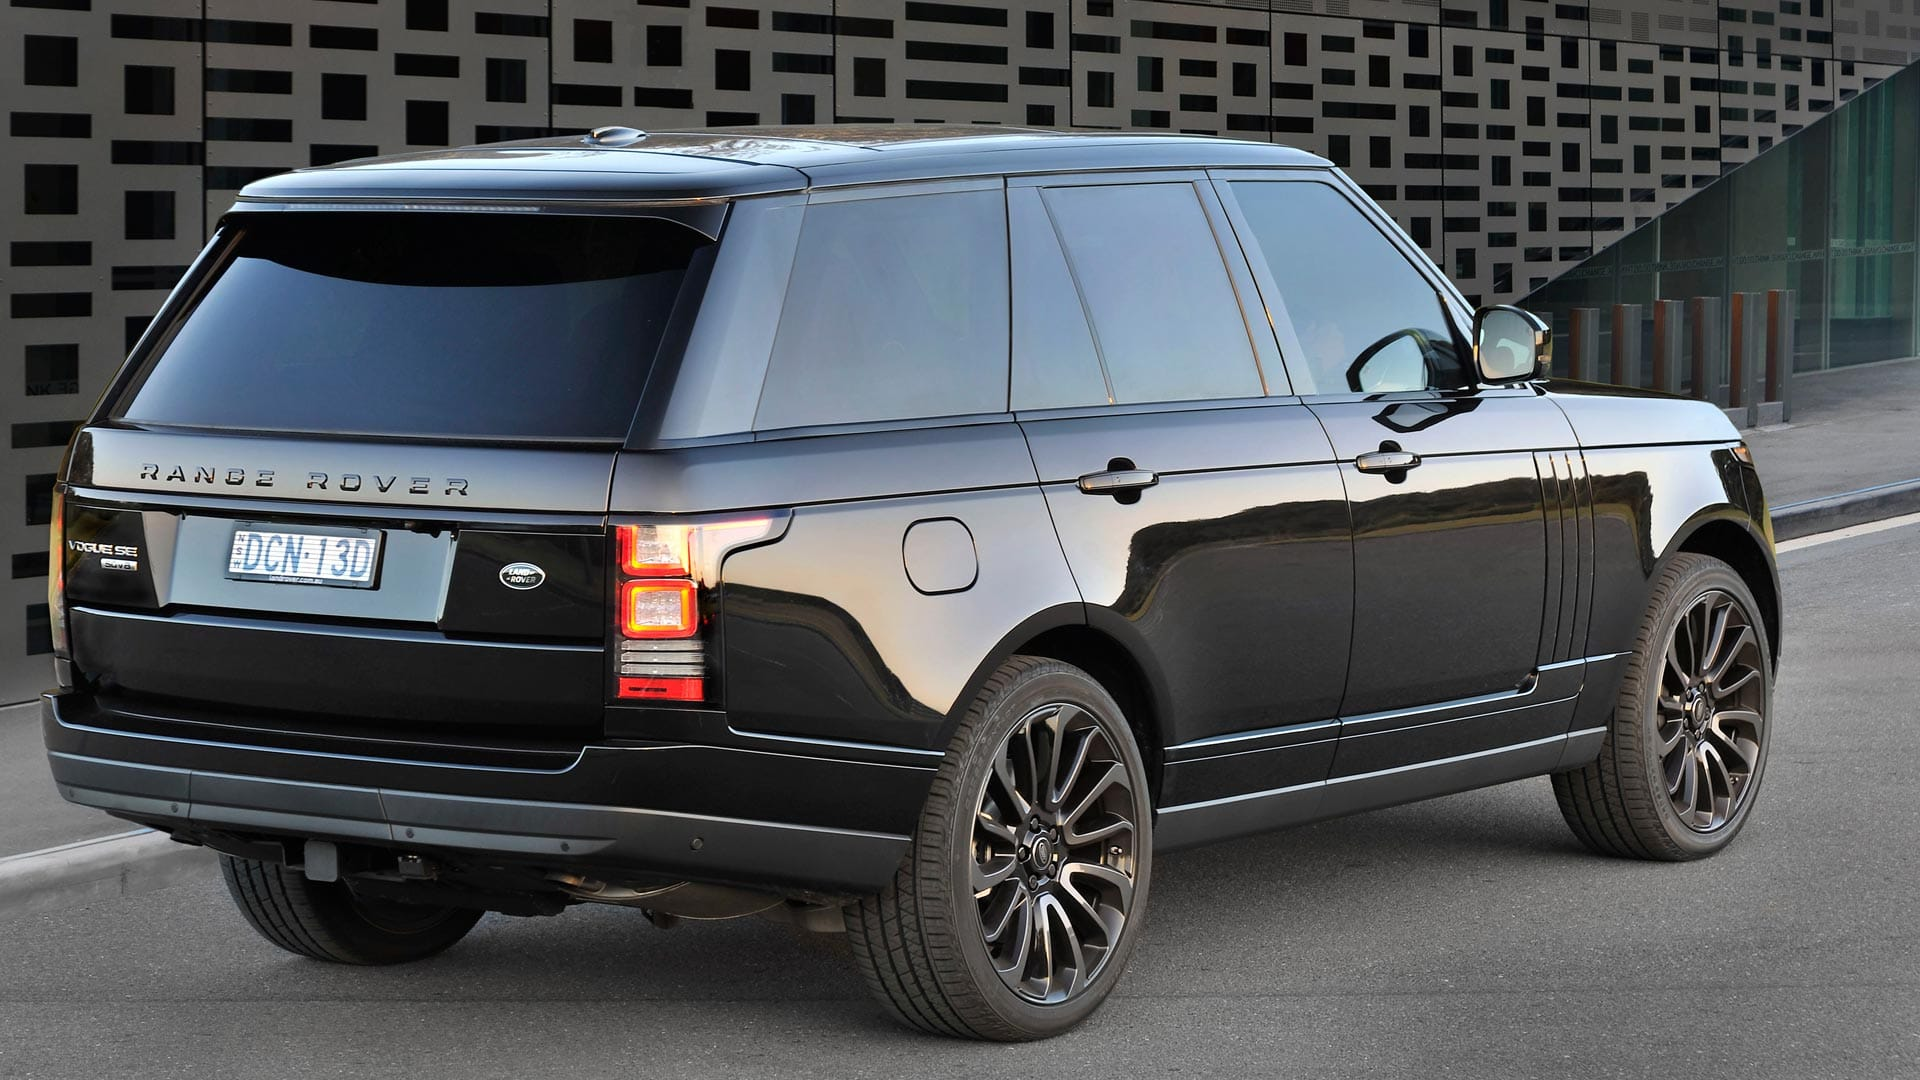 ucra range rover vogue back ultimate car rentals australia. Black Bedroom Furniture Sets. Home Design Ideas